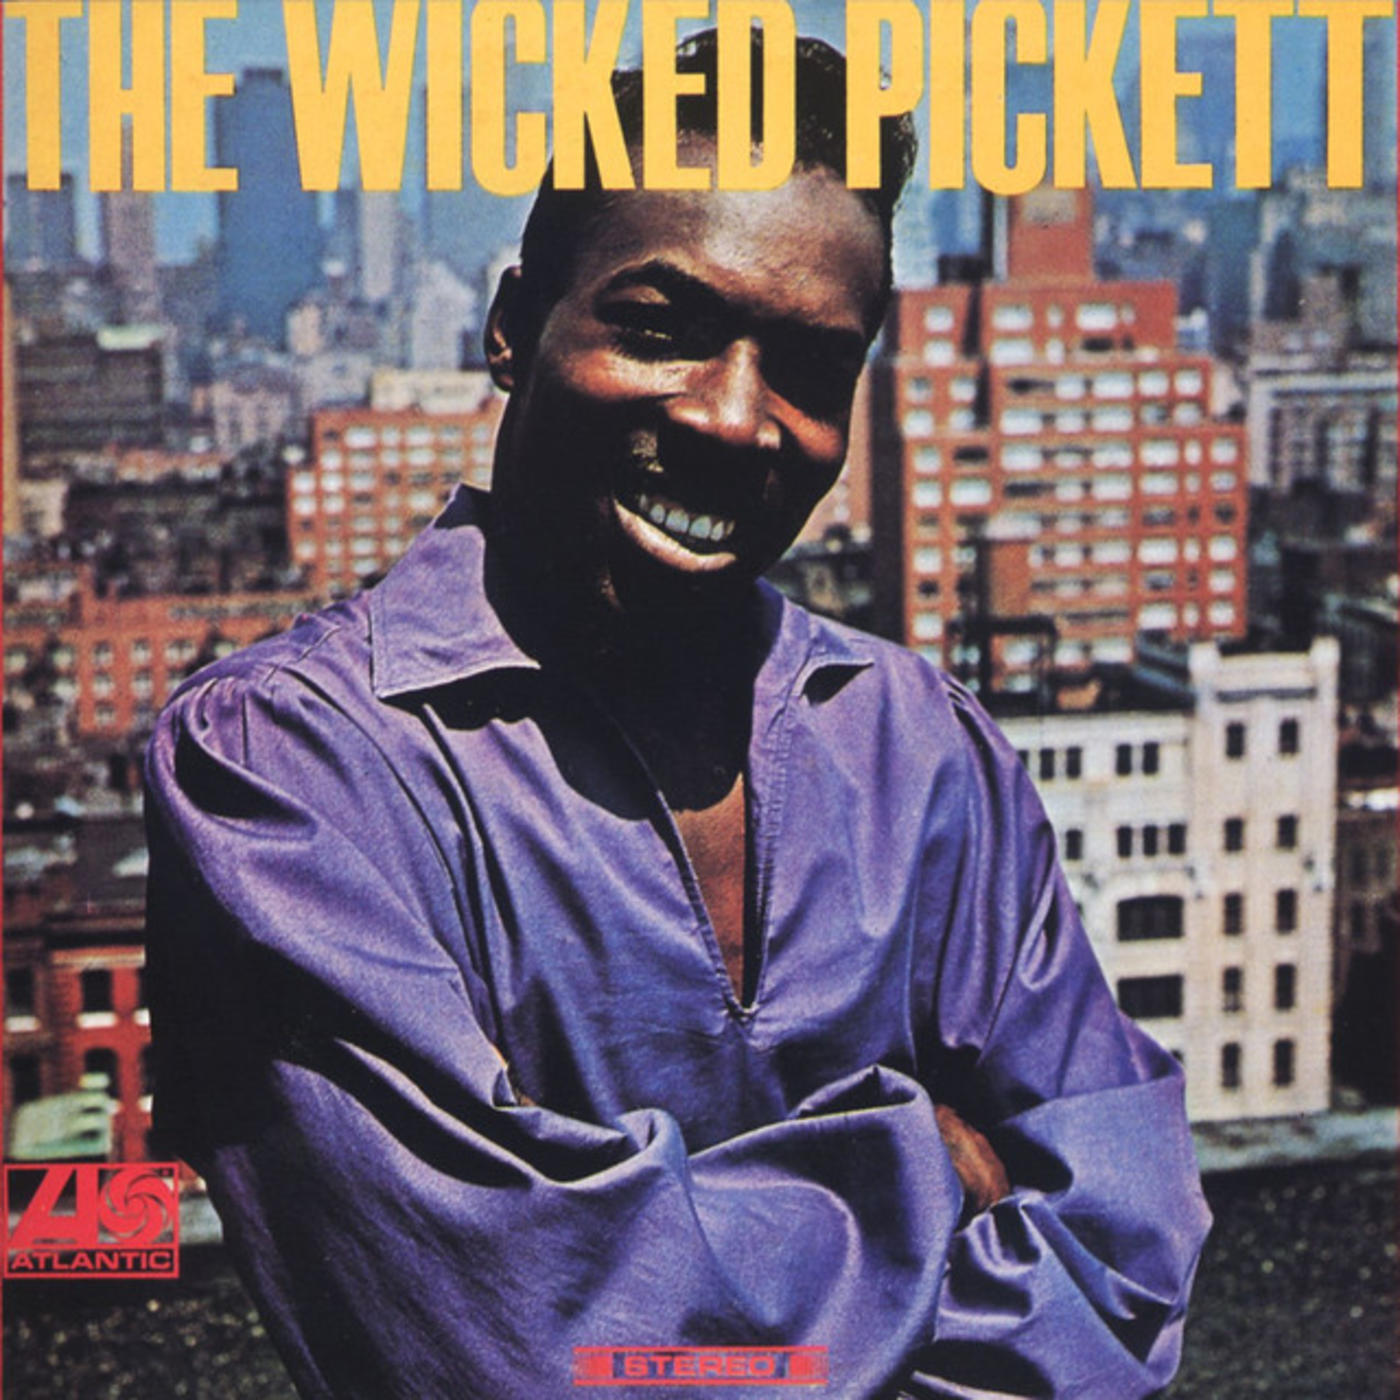 The Wicked Pickett